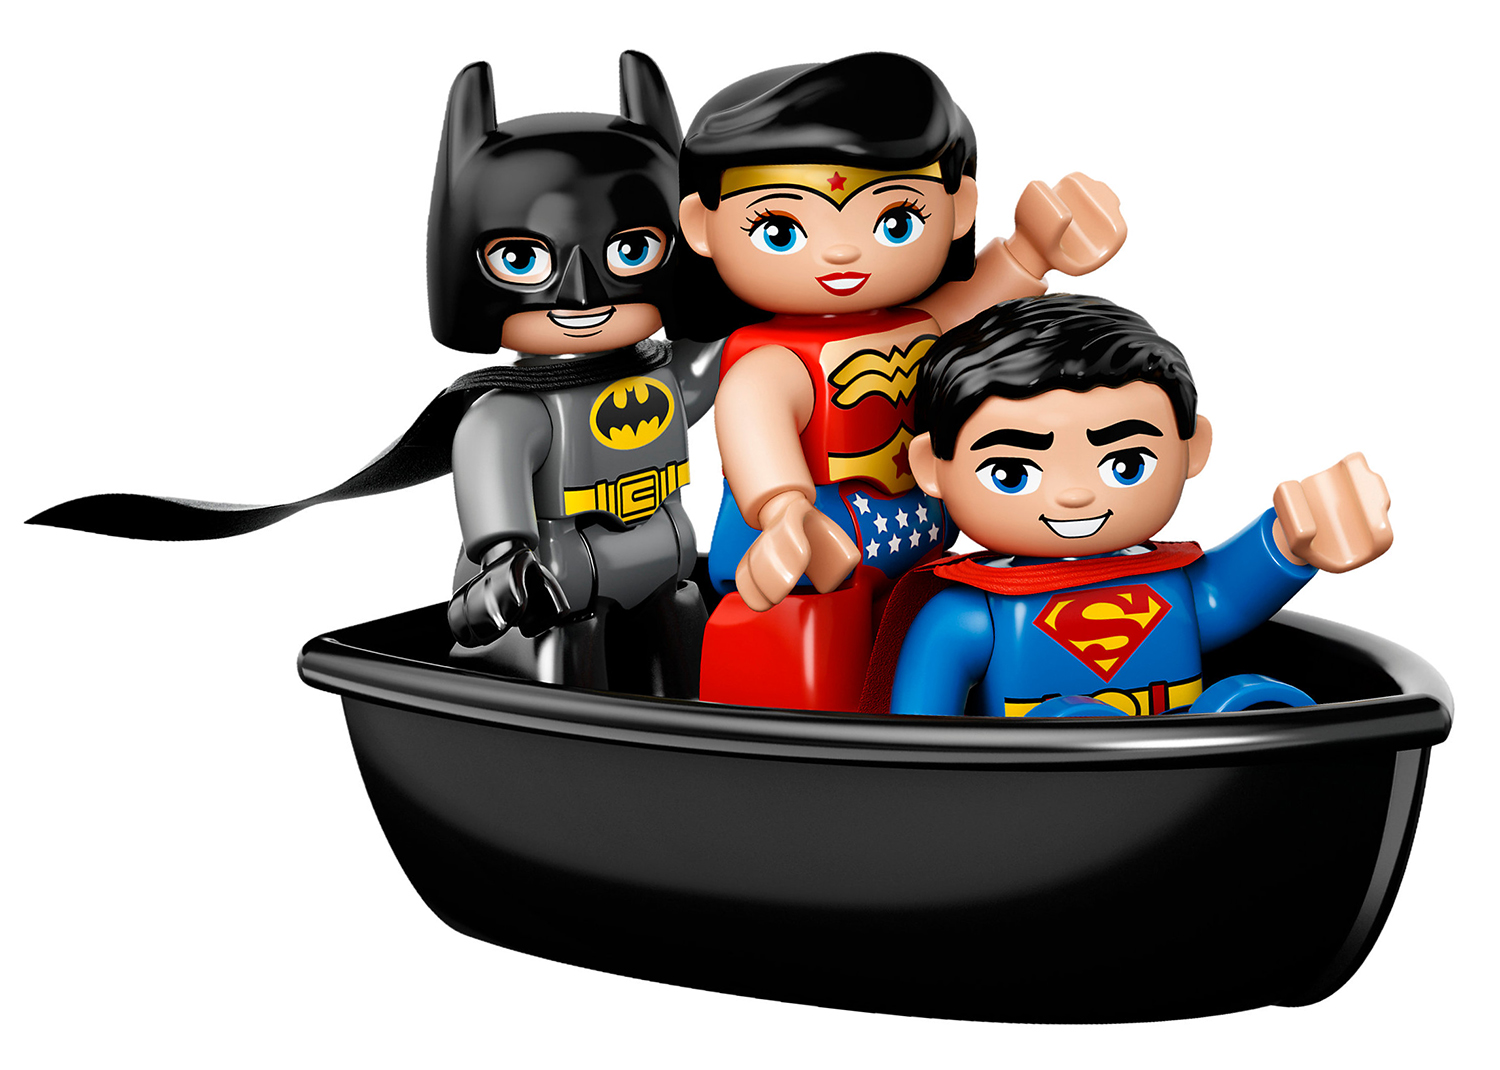 Coloriage Batman Et Superman A Imprimer.Coloriage Batman Superman Lego A Imprimer